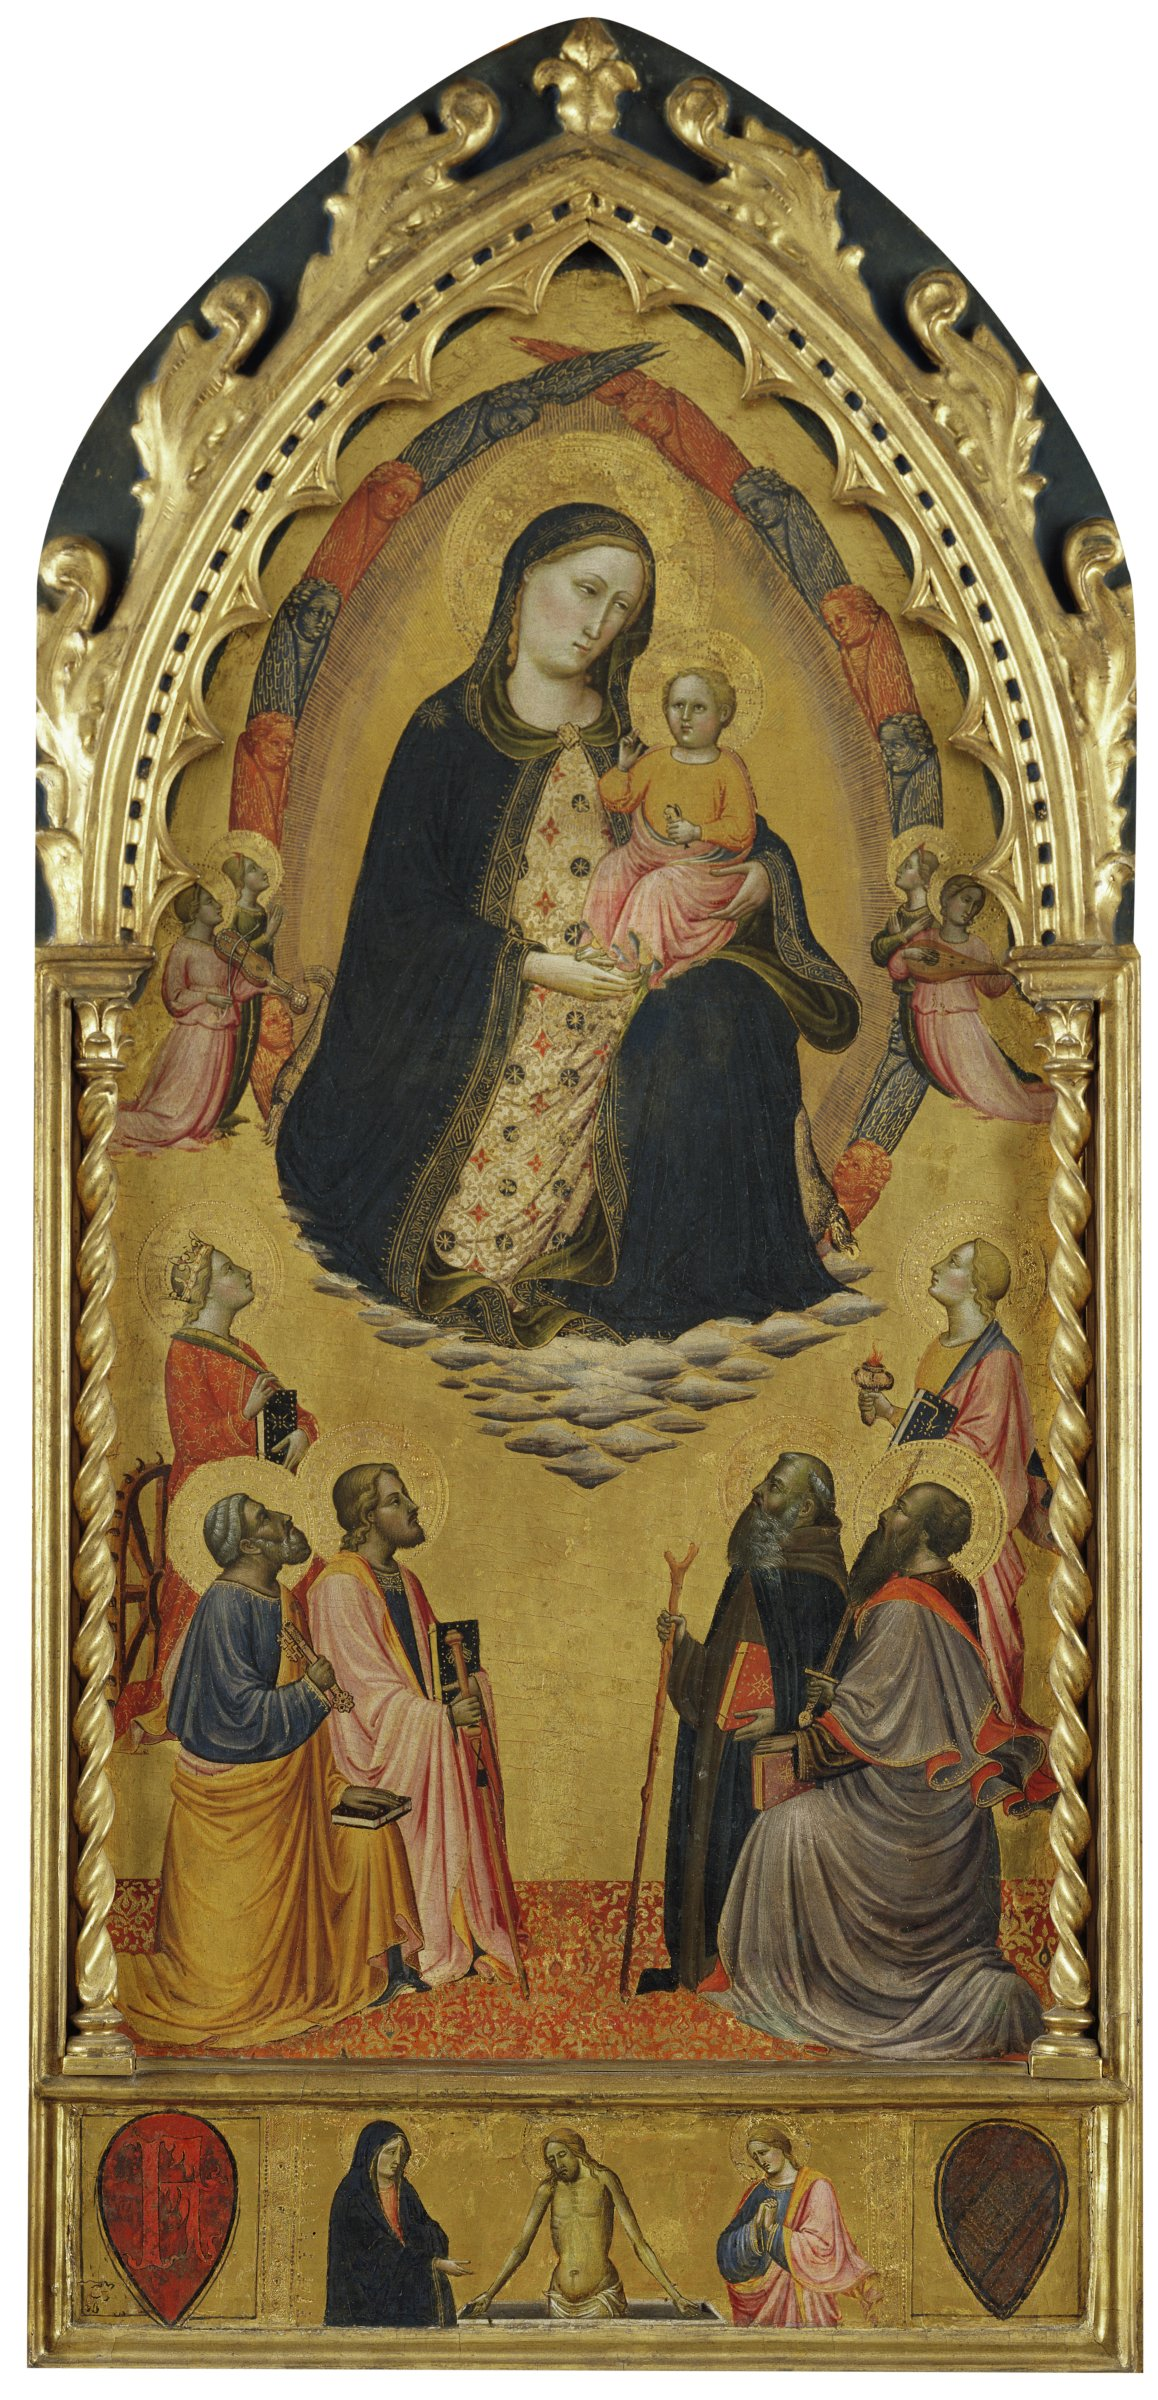 The Madonna with the Christ Child in her arms is suspended in clouds above a group of six saints who look up at them.